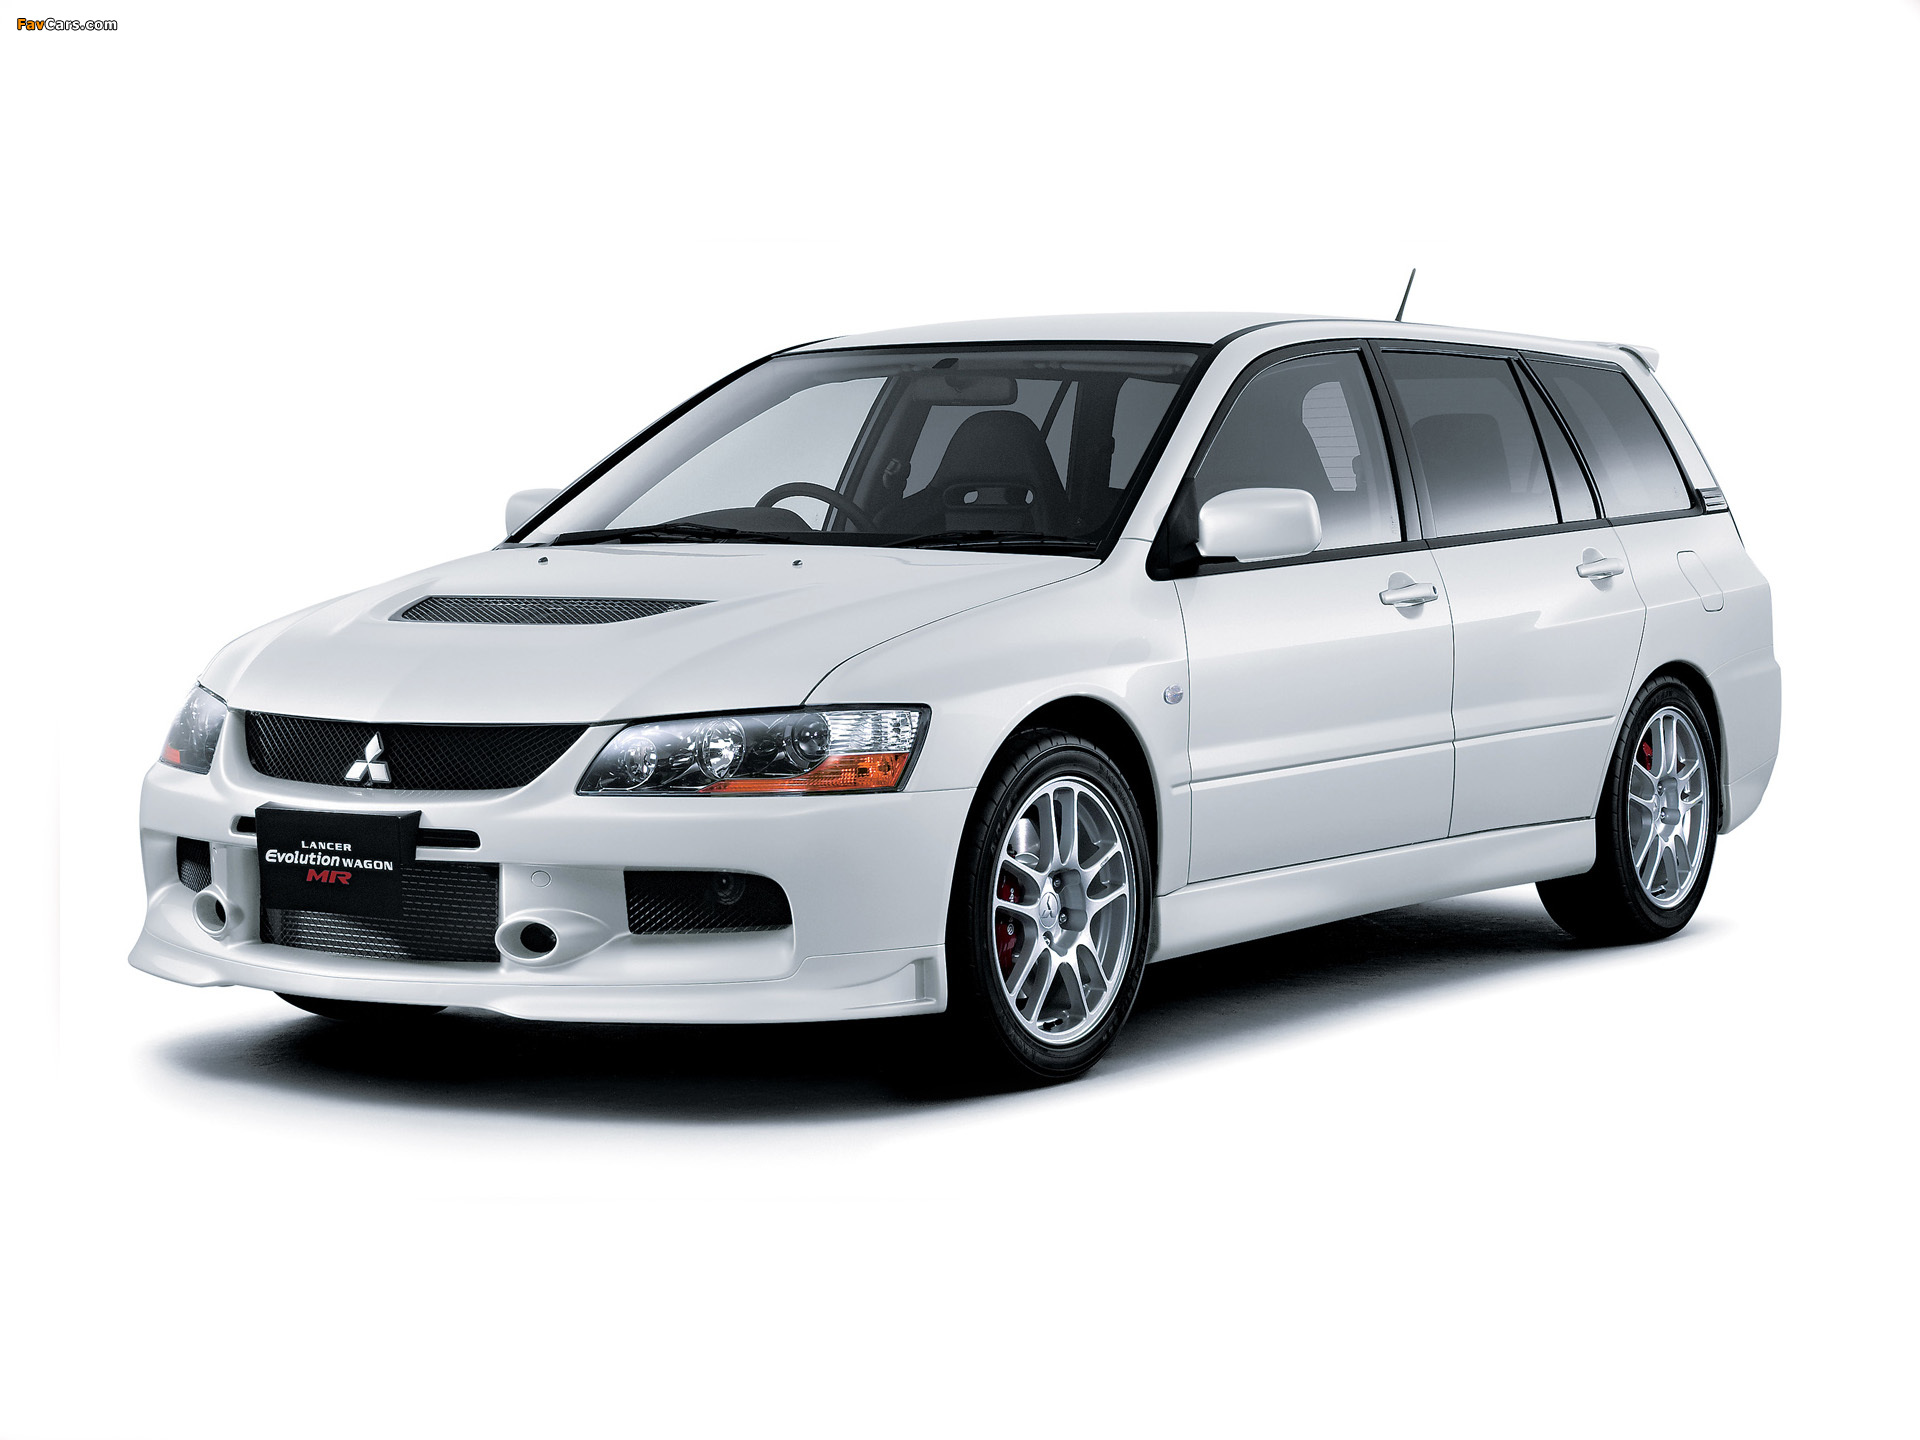 Mitsubishi Lancer Evolution Ix Wagon Mr 2006 Wallpapers